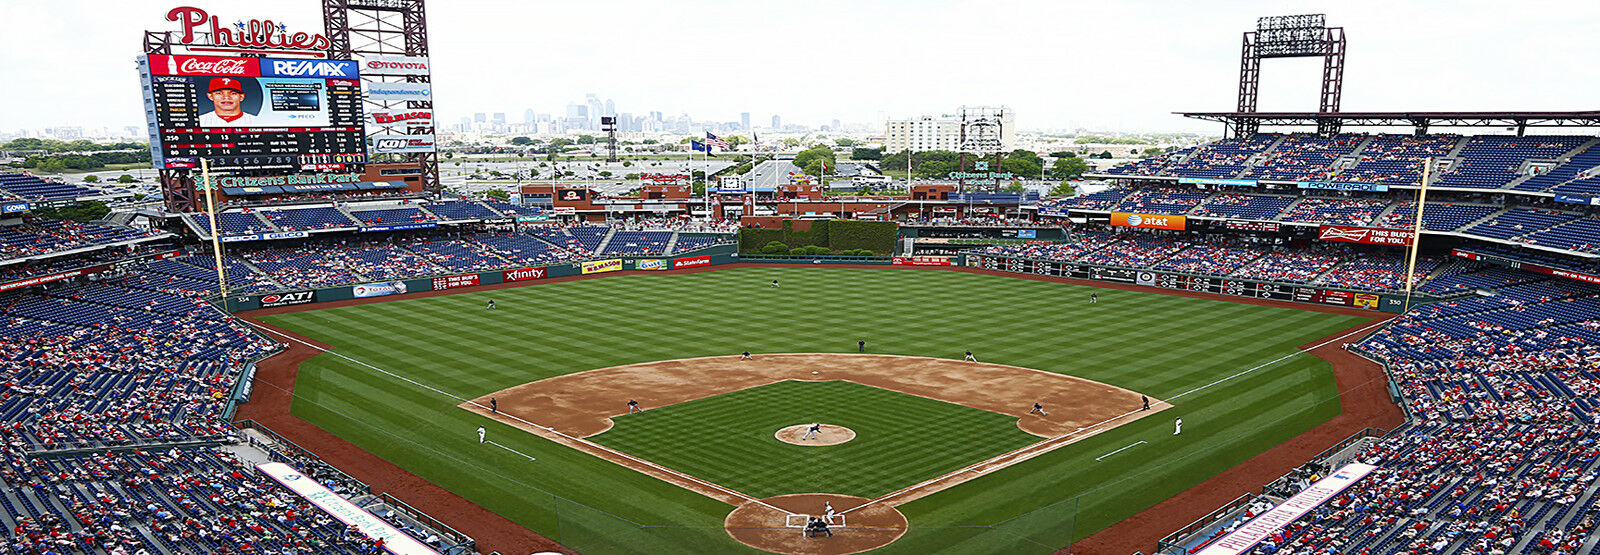 Baltimore Orioles at Philadelphia Phillies Spring Training Tickets (Split Squad)